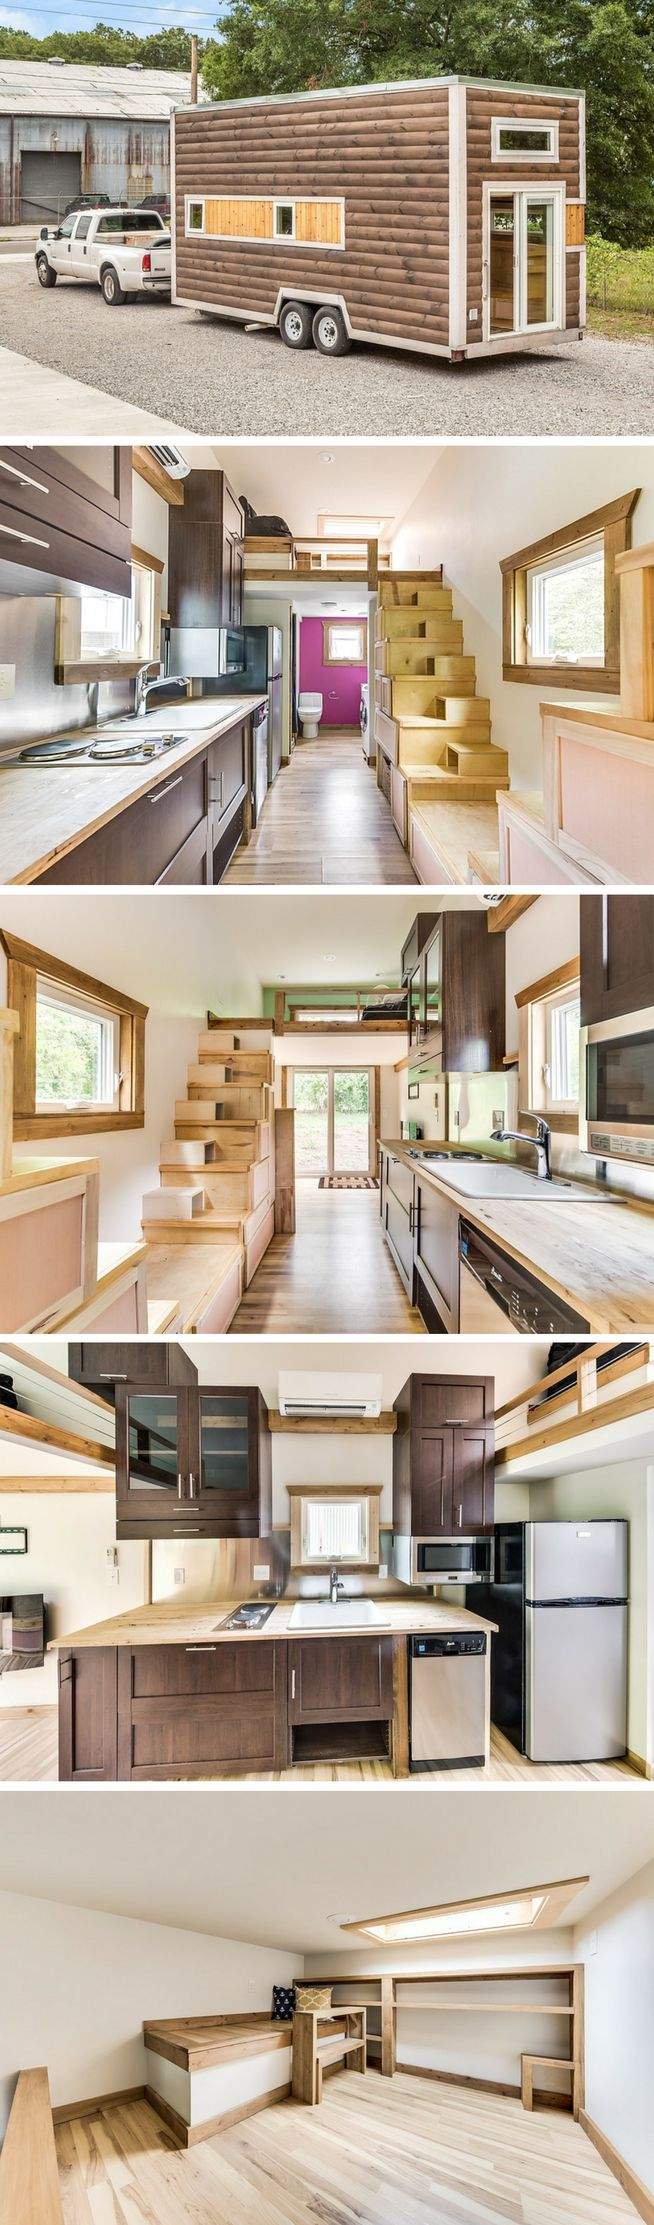 148 best Cabin Style Tiny Homes images on Pinterest Tiny house